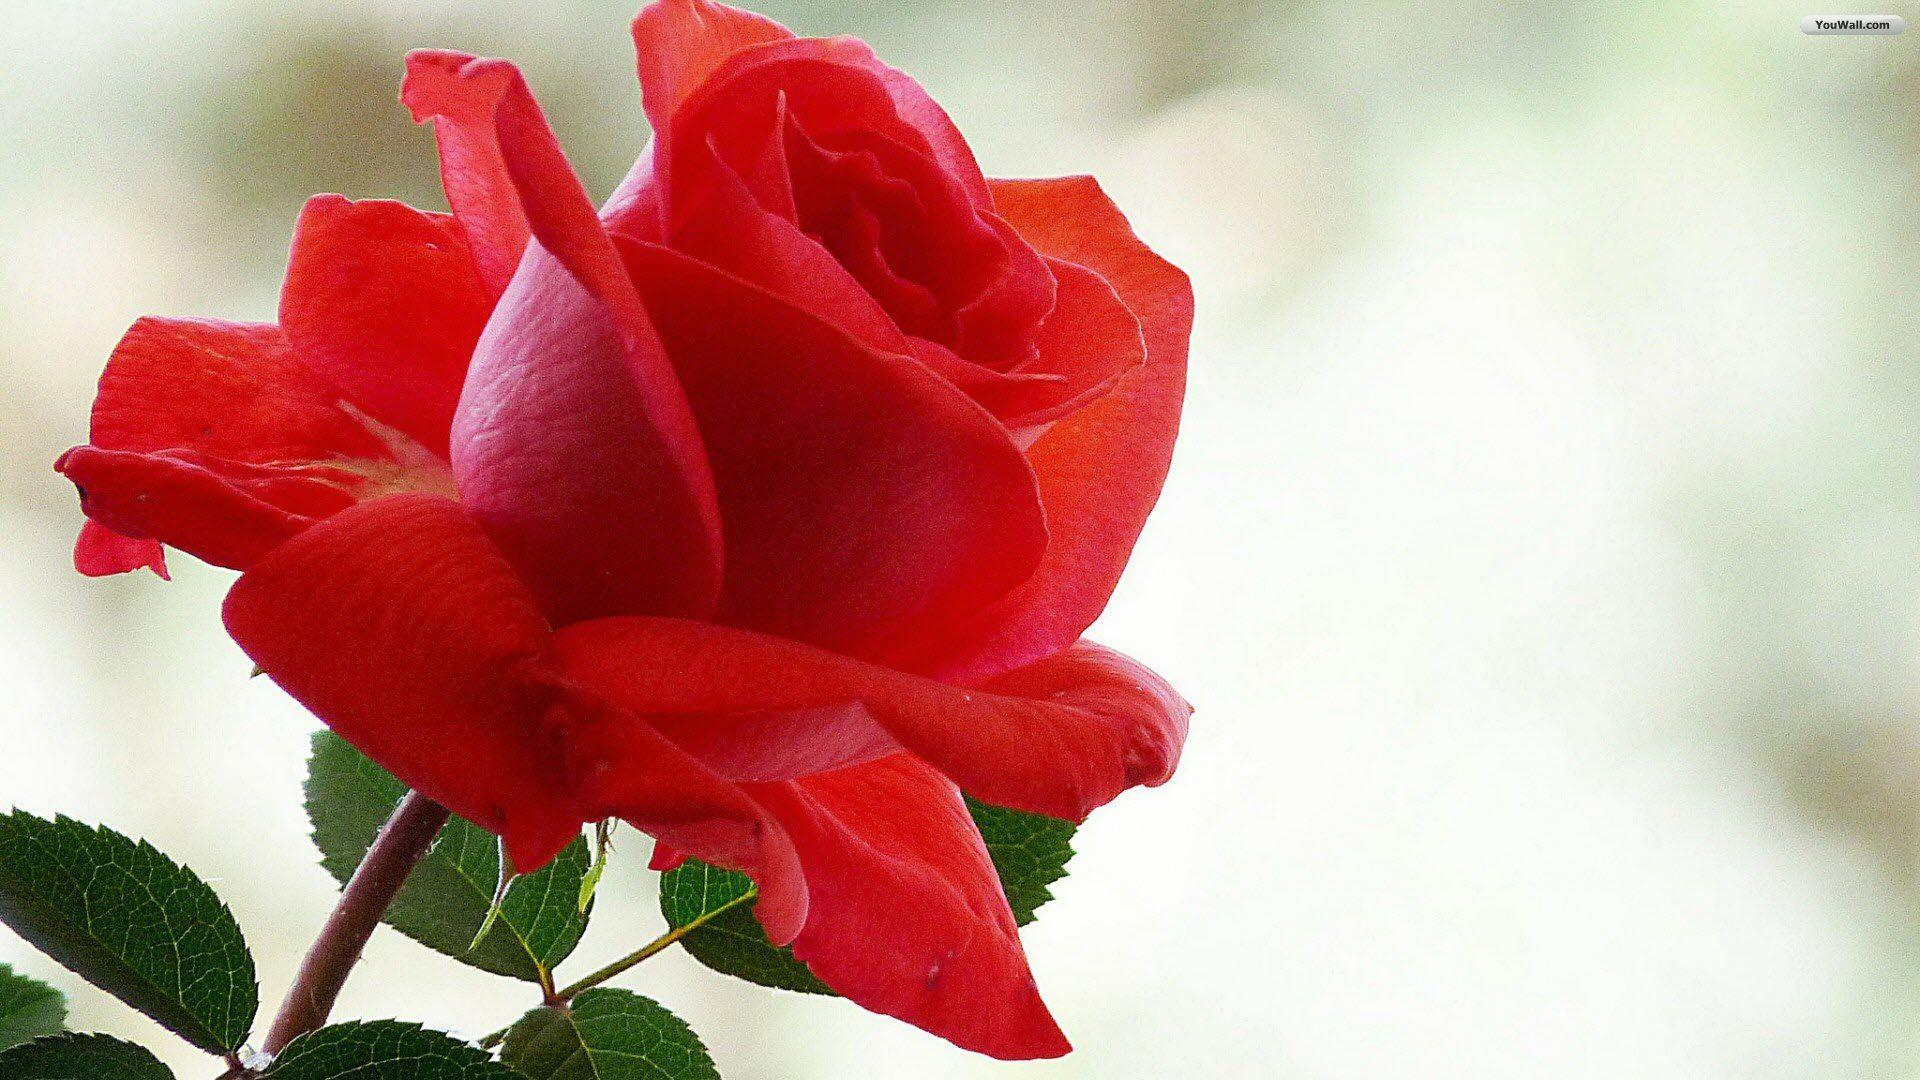 Beautiful red rose pictures 19201080 red rose picture wallpapers beautiful red rose pictures 19201080 red rose picture wallpapers 40 wallpapers adorable wallpapers izmirmasajfo